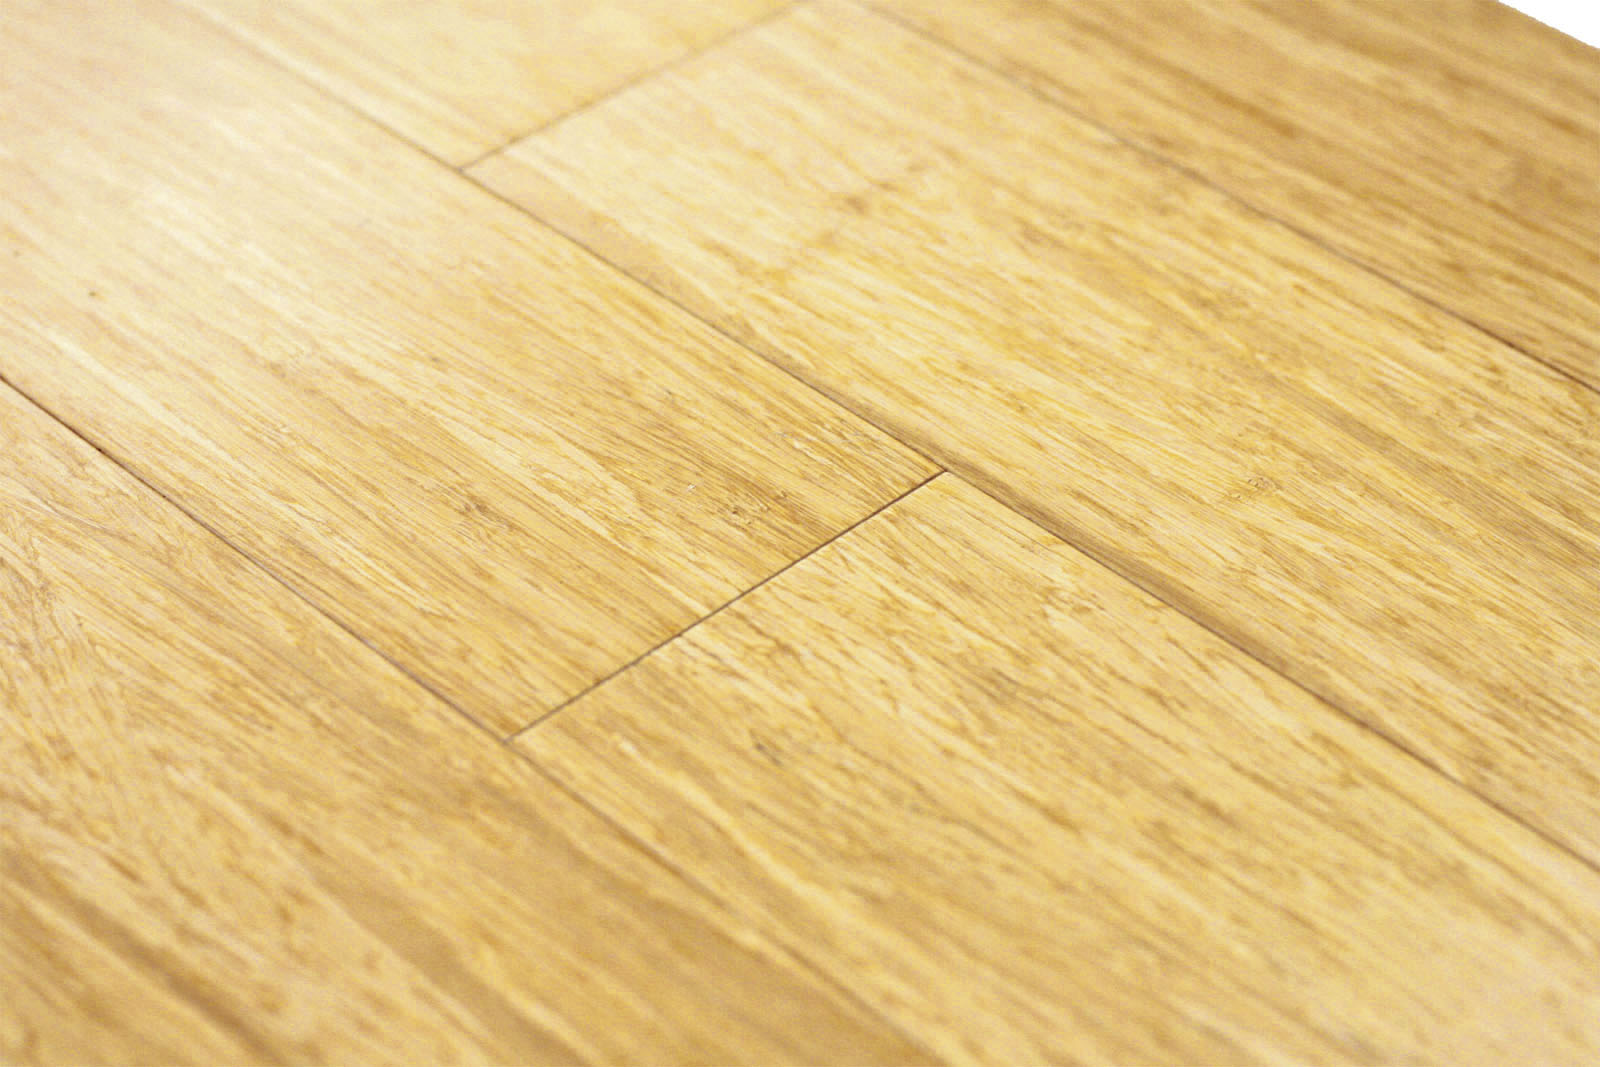 Strand woven bamboo for Bamboo flooring outdoor decking